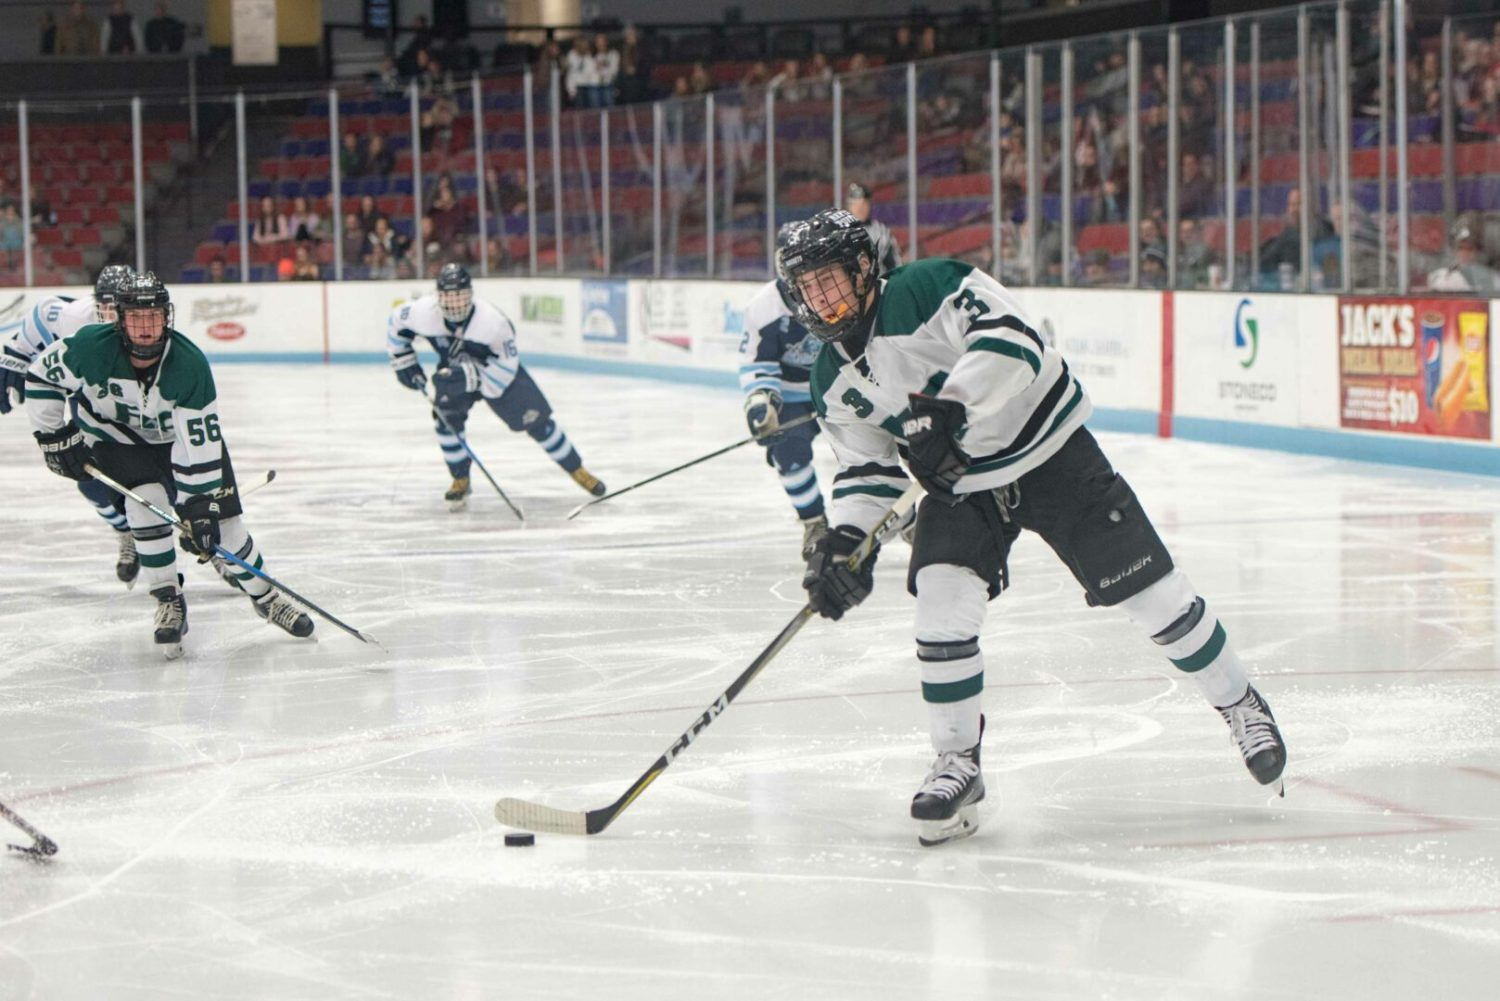 (PHOTO GALLERY) Nolan Convertini nets hat trick in Reeths-Puffer hockey win over Mona Shores